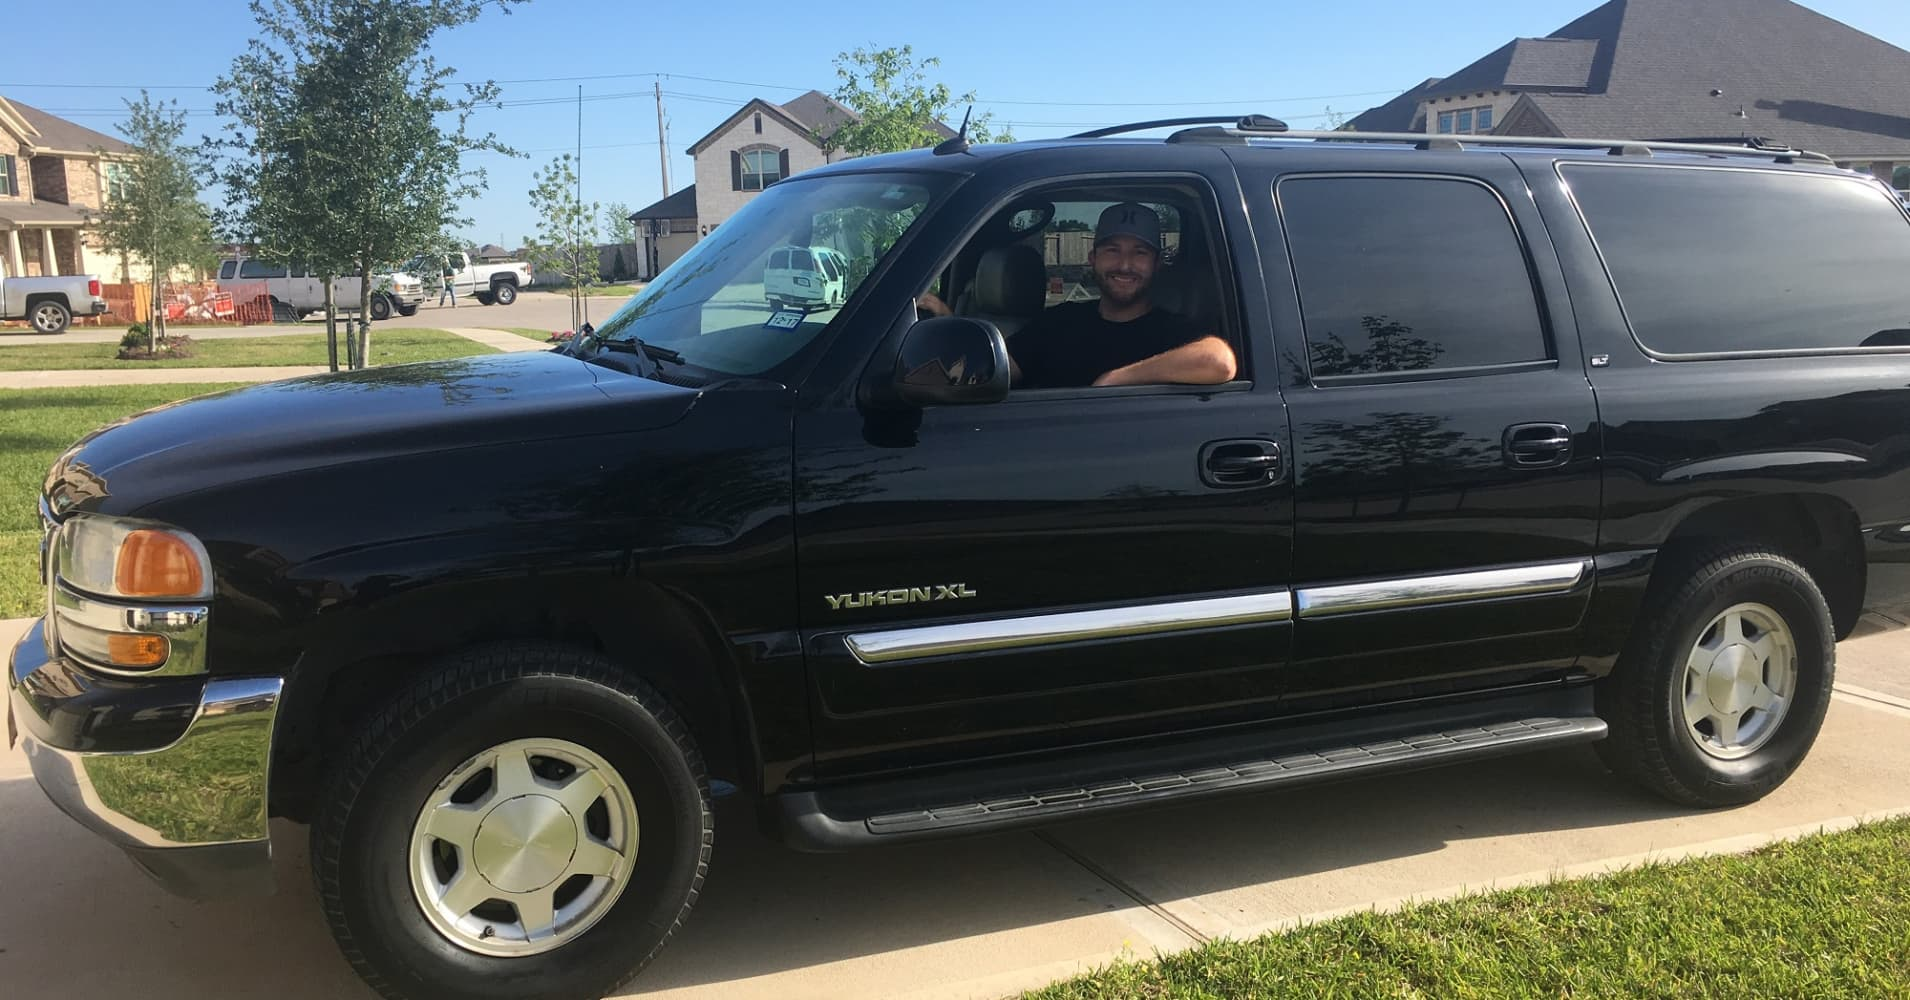 Why Millennial Money Man drives a 14-year old car with 137,000 miles